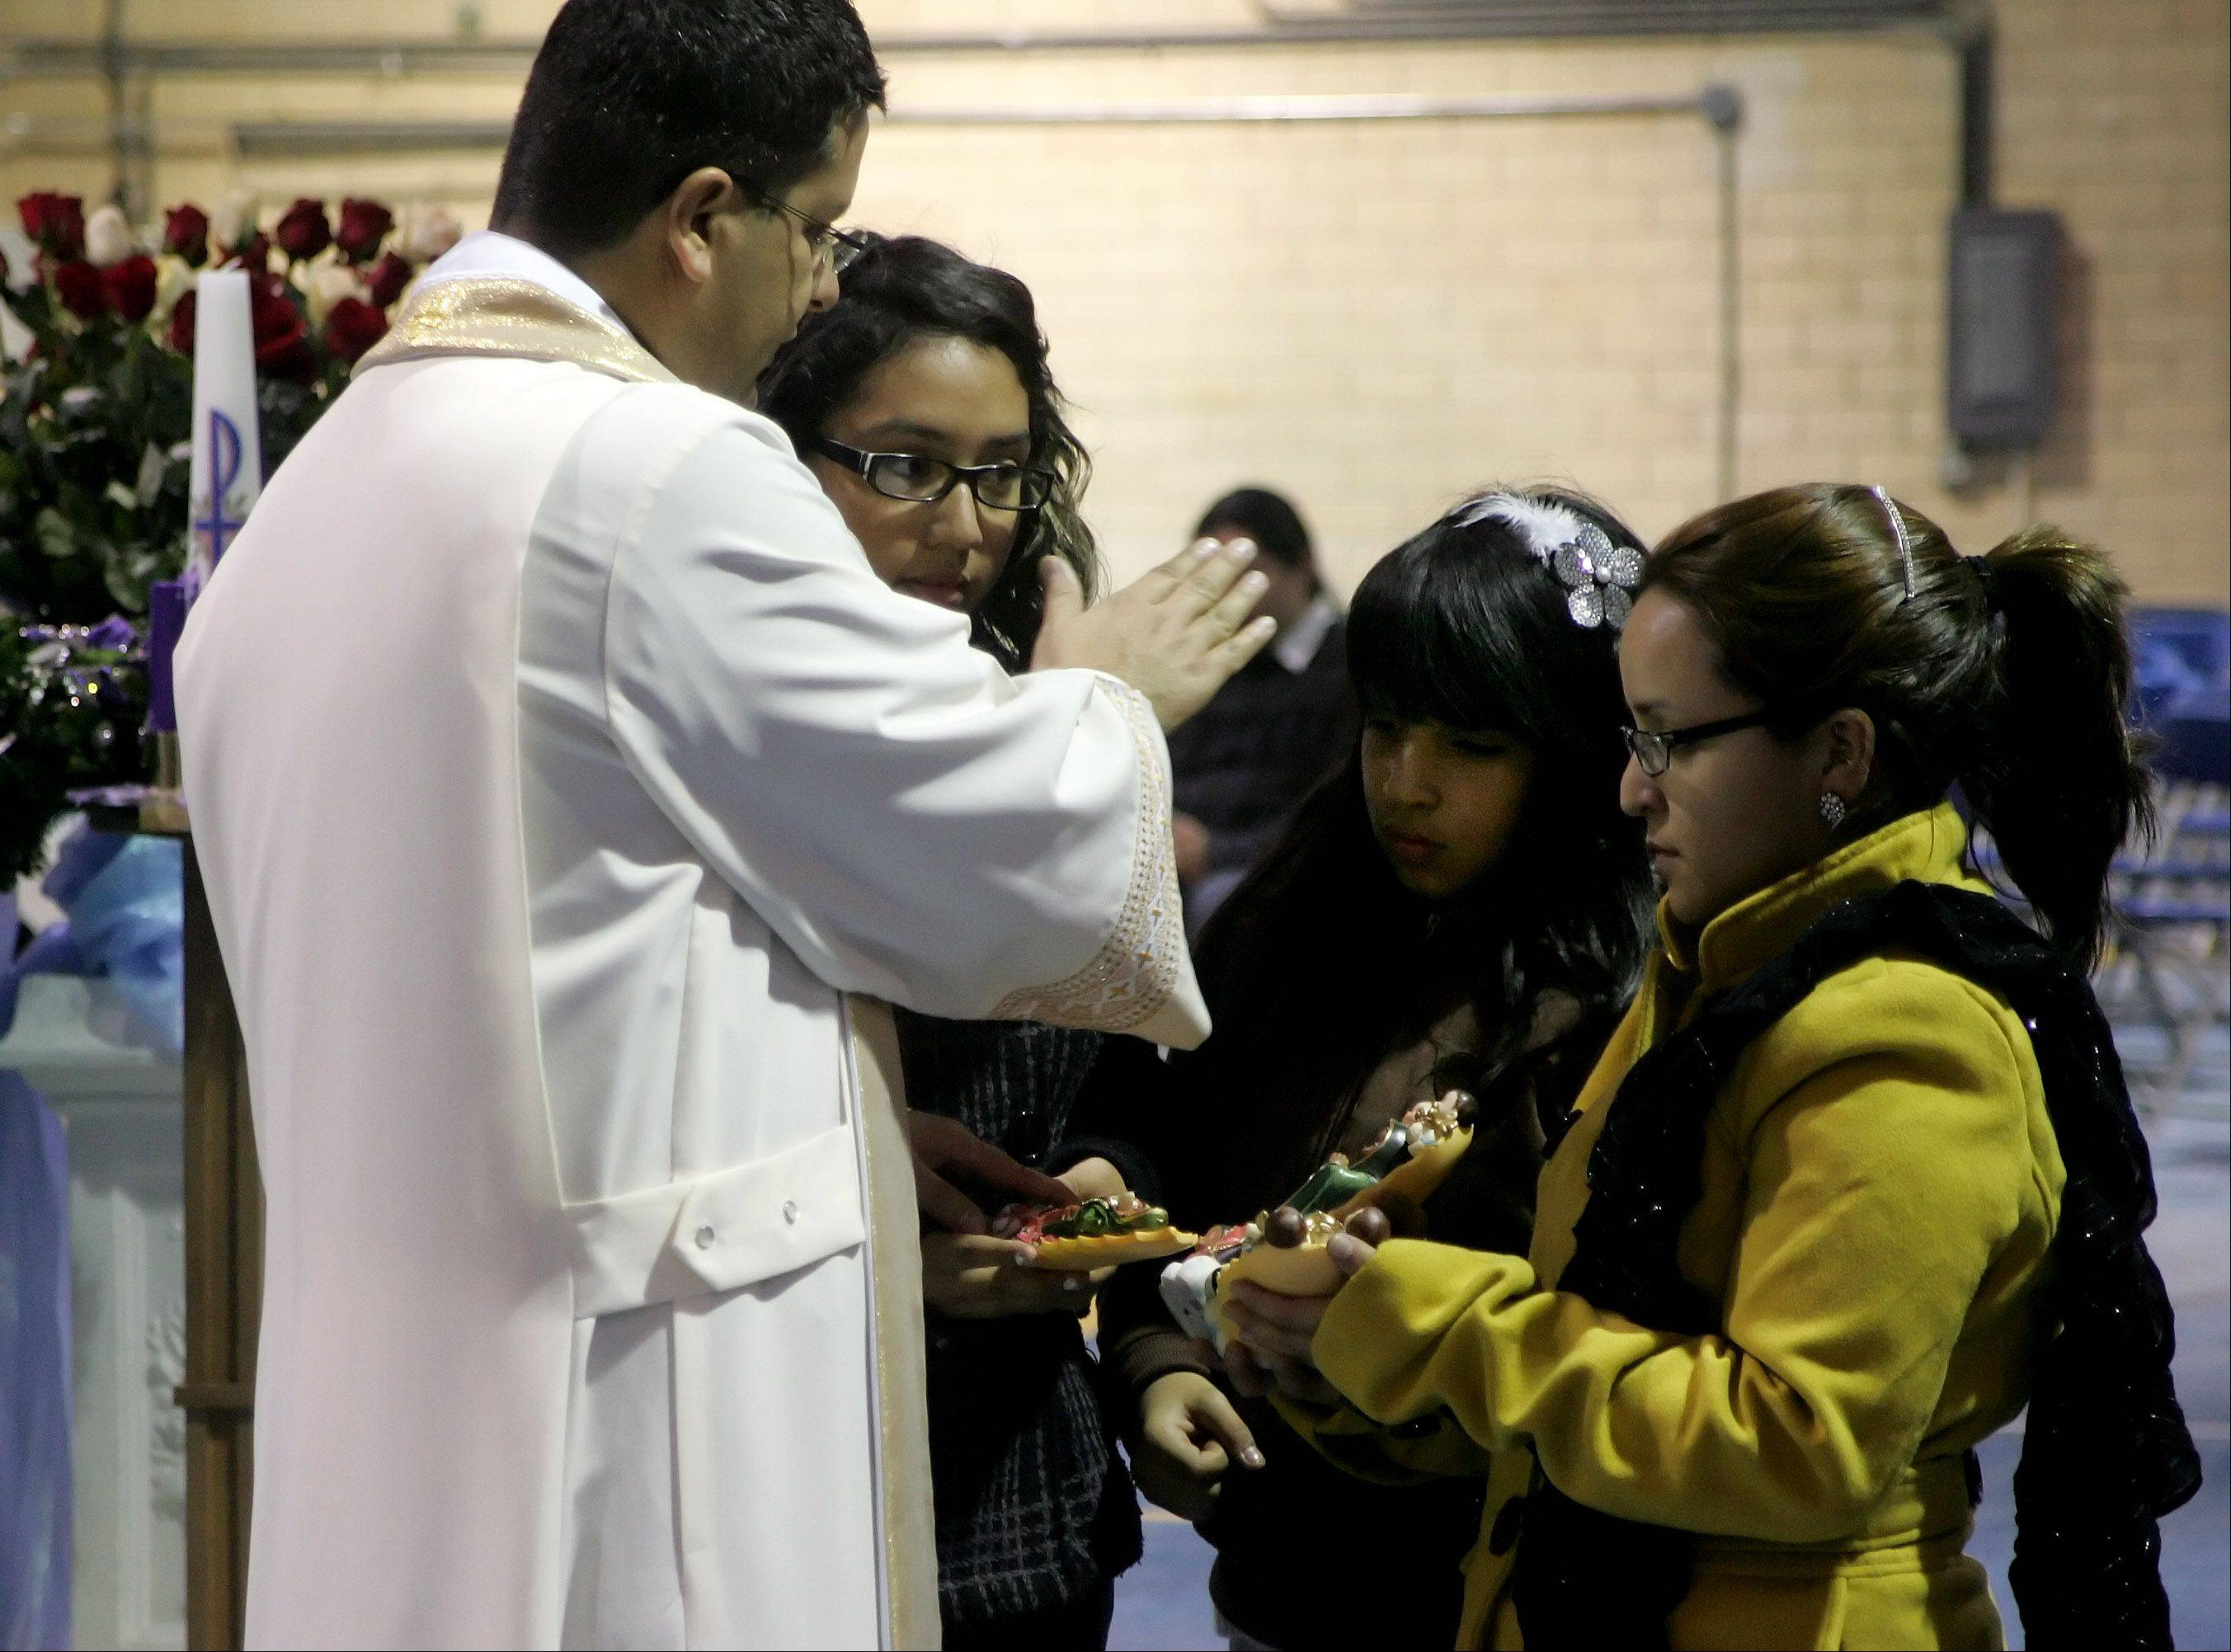 Father Miguel Martinez blesses Jennifer, Dulce, and Nancy Palomar of Elgin during the annual celebration honoring Our Lady of the Guadalupe Sunday at Maryville Academy in Des Plaines. Crowds in excess of 100,000 people are expected to attend the two day festival.